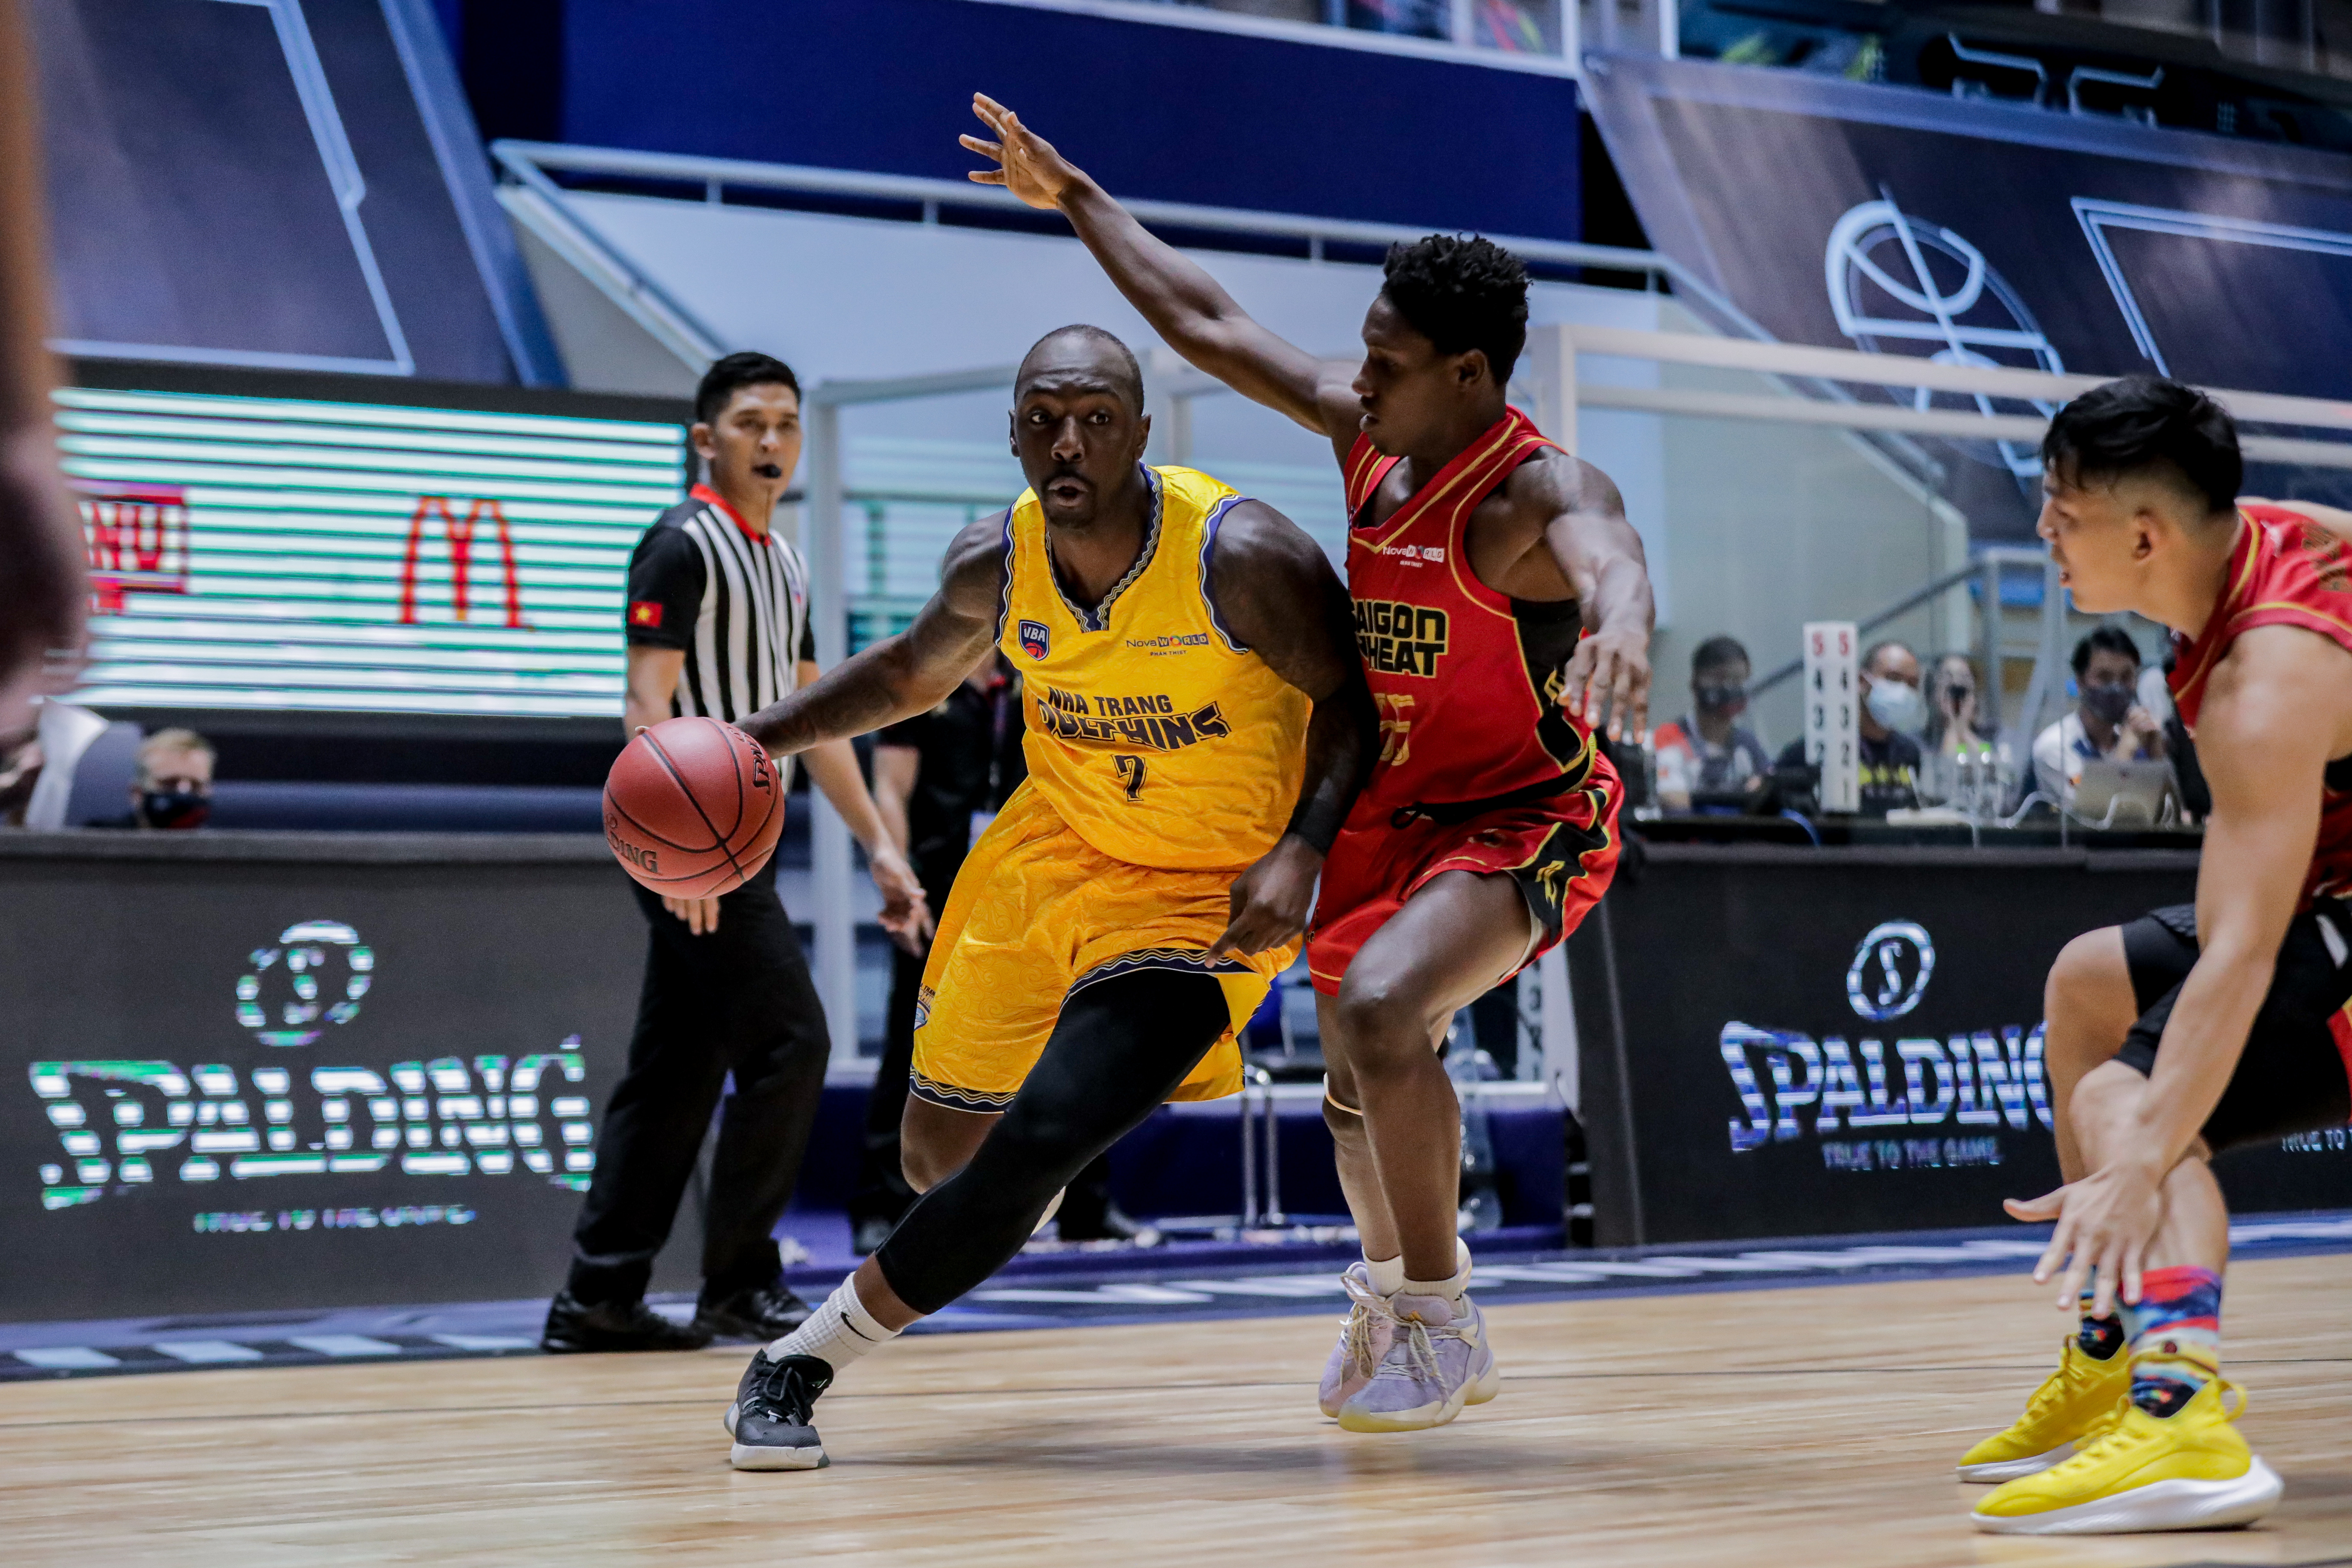 Saigon Heat snatches victory from Nha Trang Dolphins in first game of VBA Premier Bubble Games